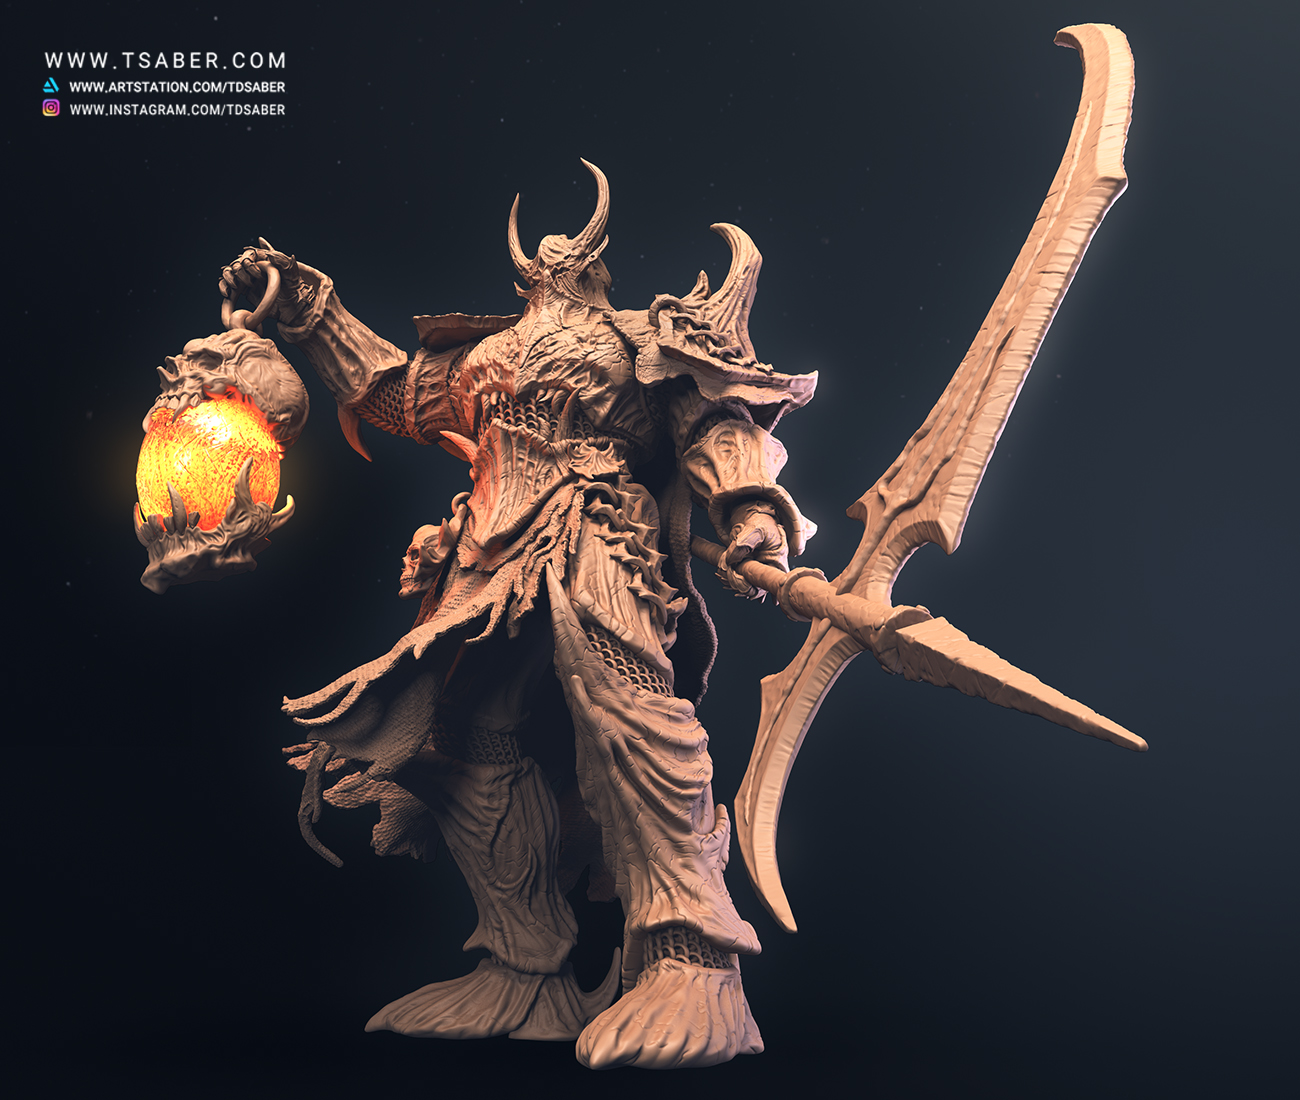 Death Knight Statue Collectibles- Myths of Valor -Tsaber